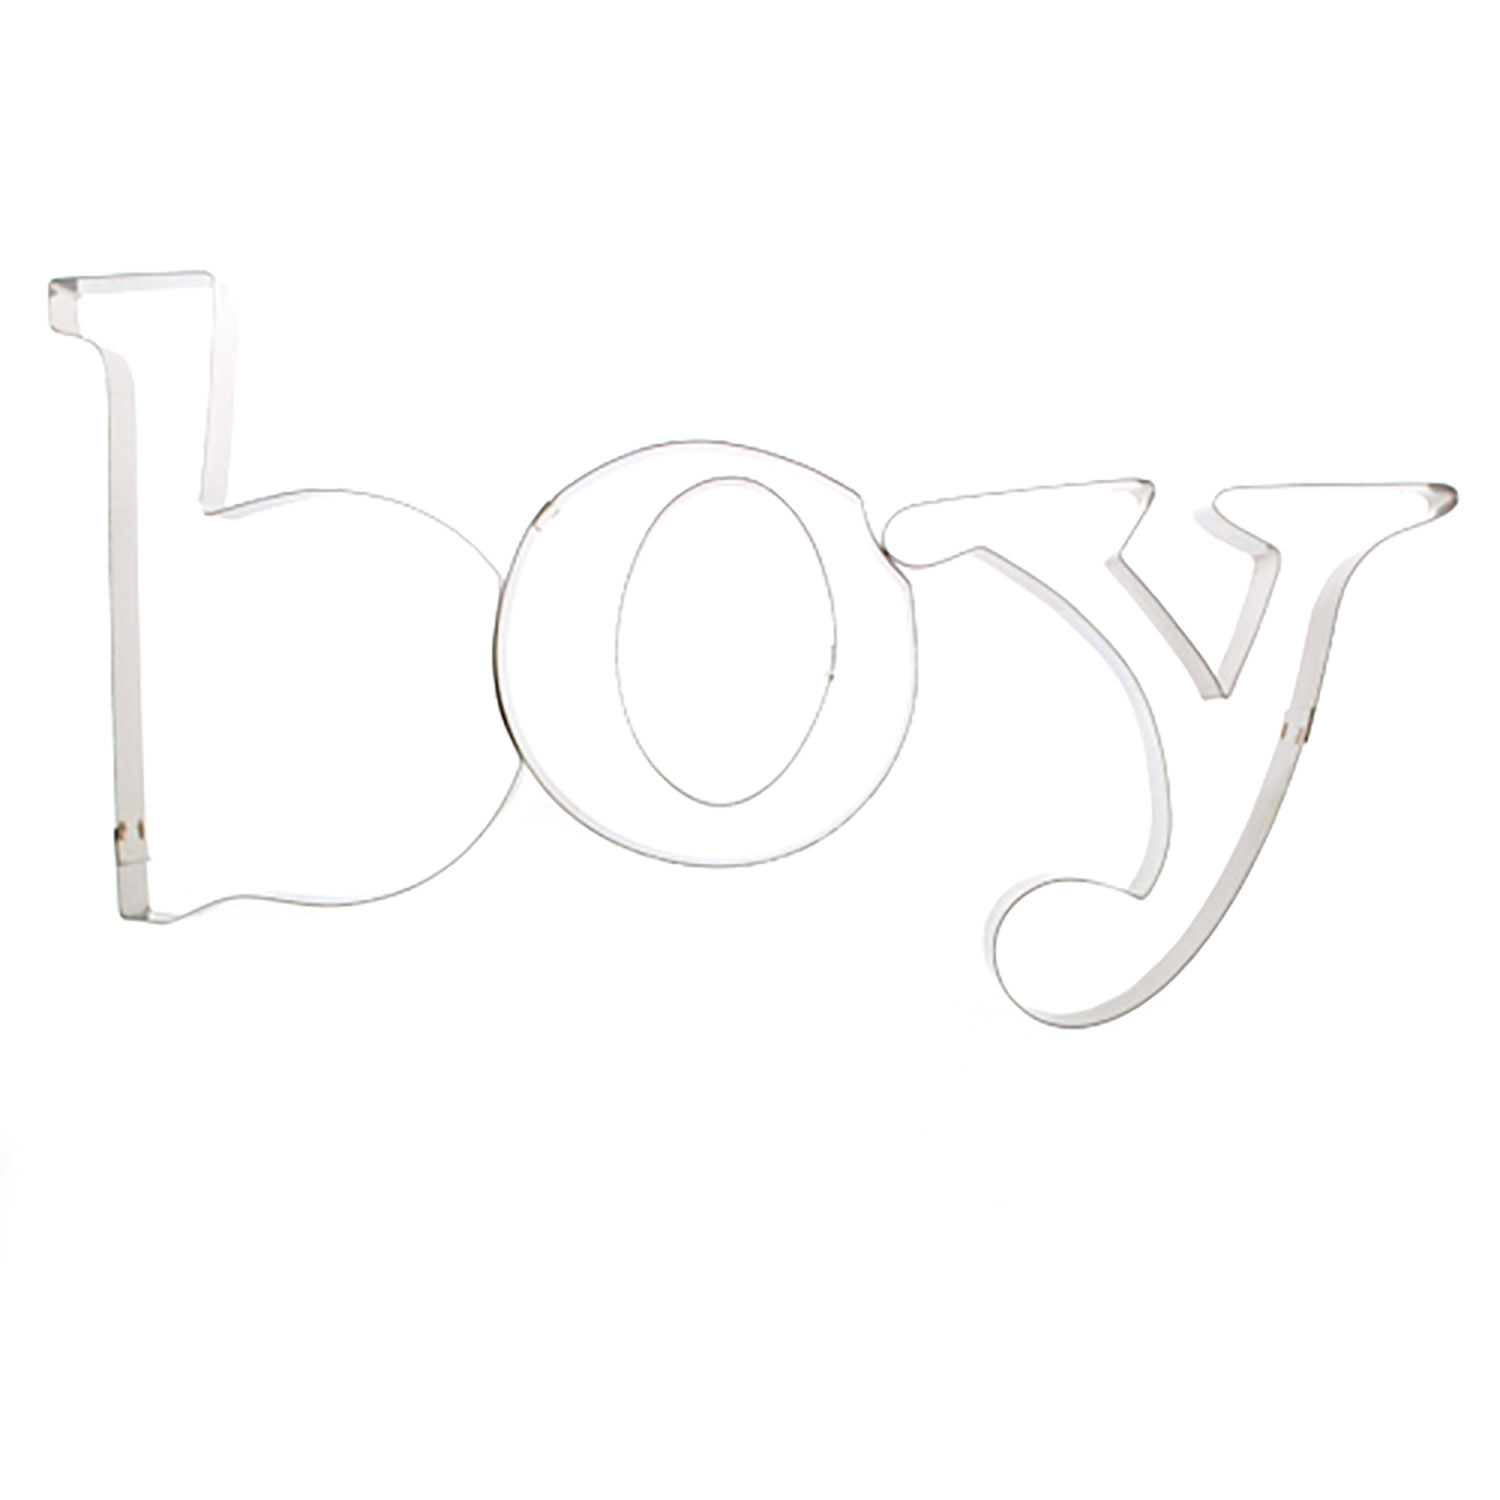 Overlapping Boy Cutter Set